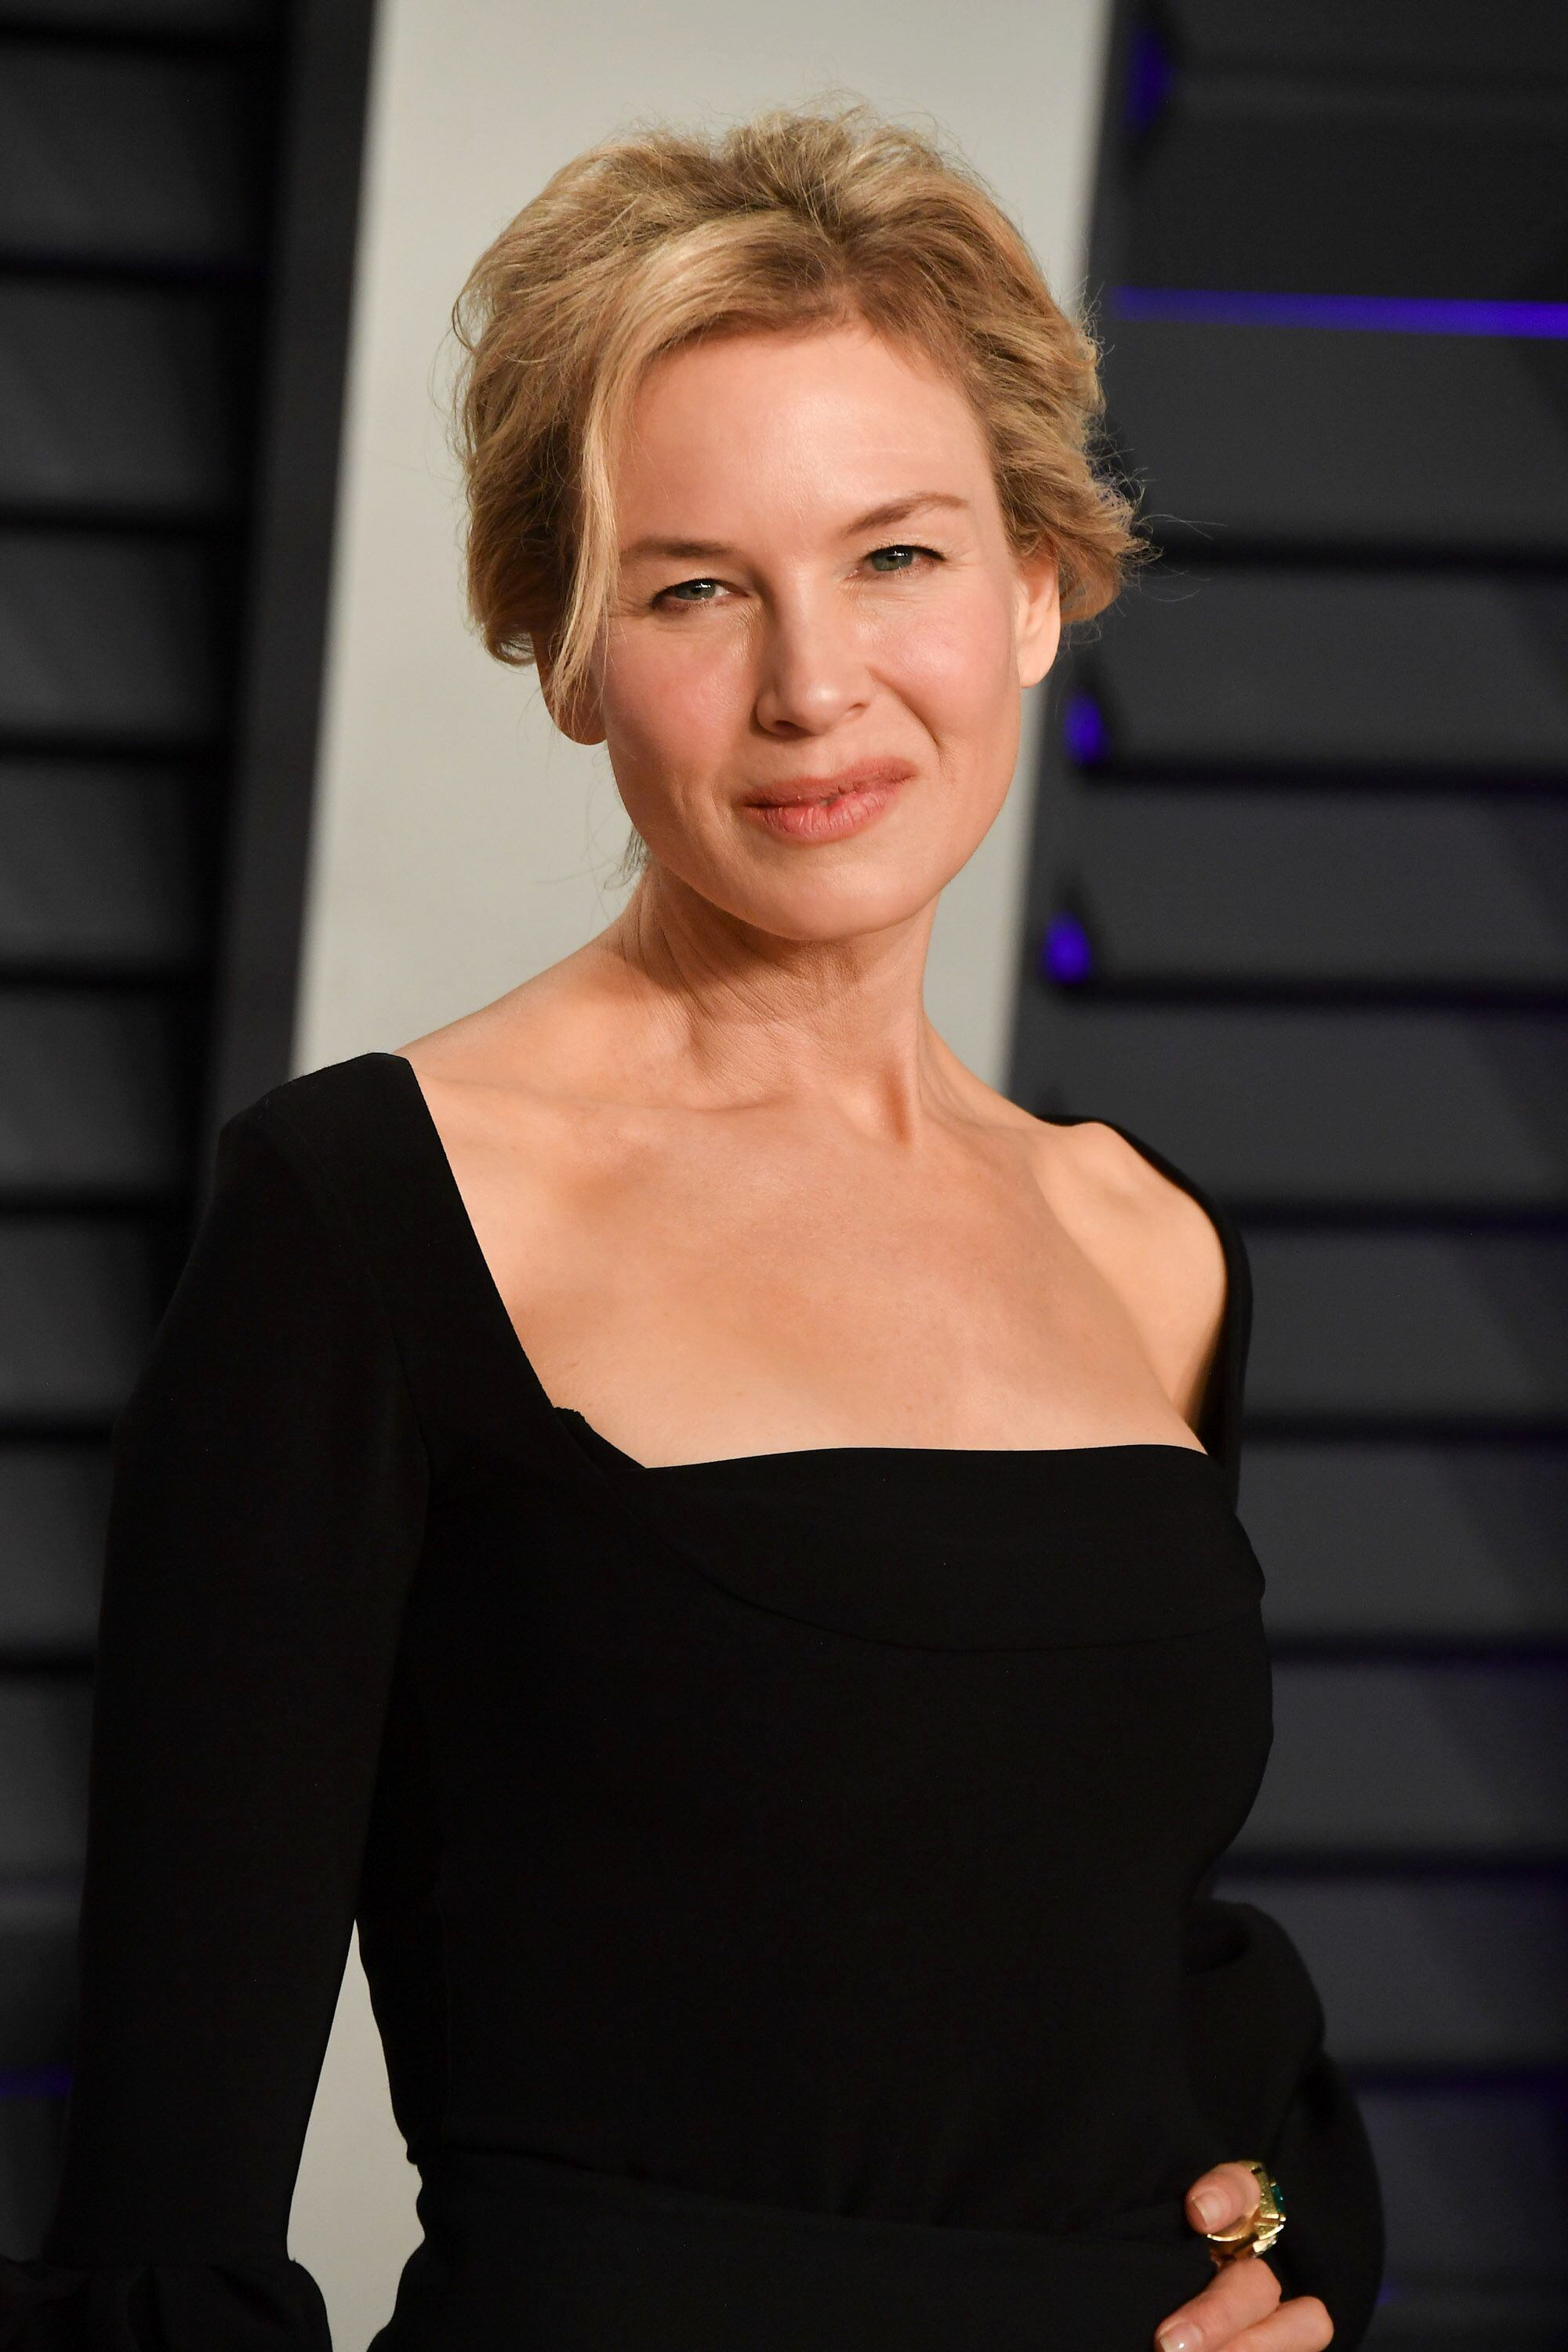 Renee Zellweger attends the 2019 Vanity Fair Oscar Party. | Source: Getty Images